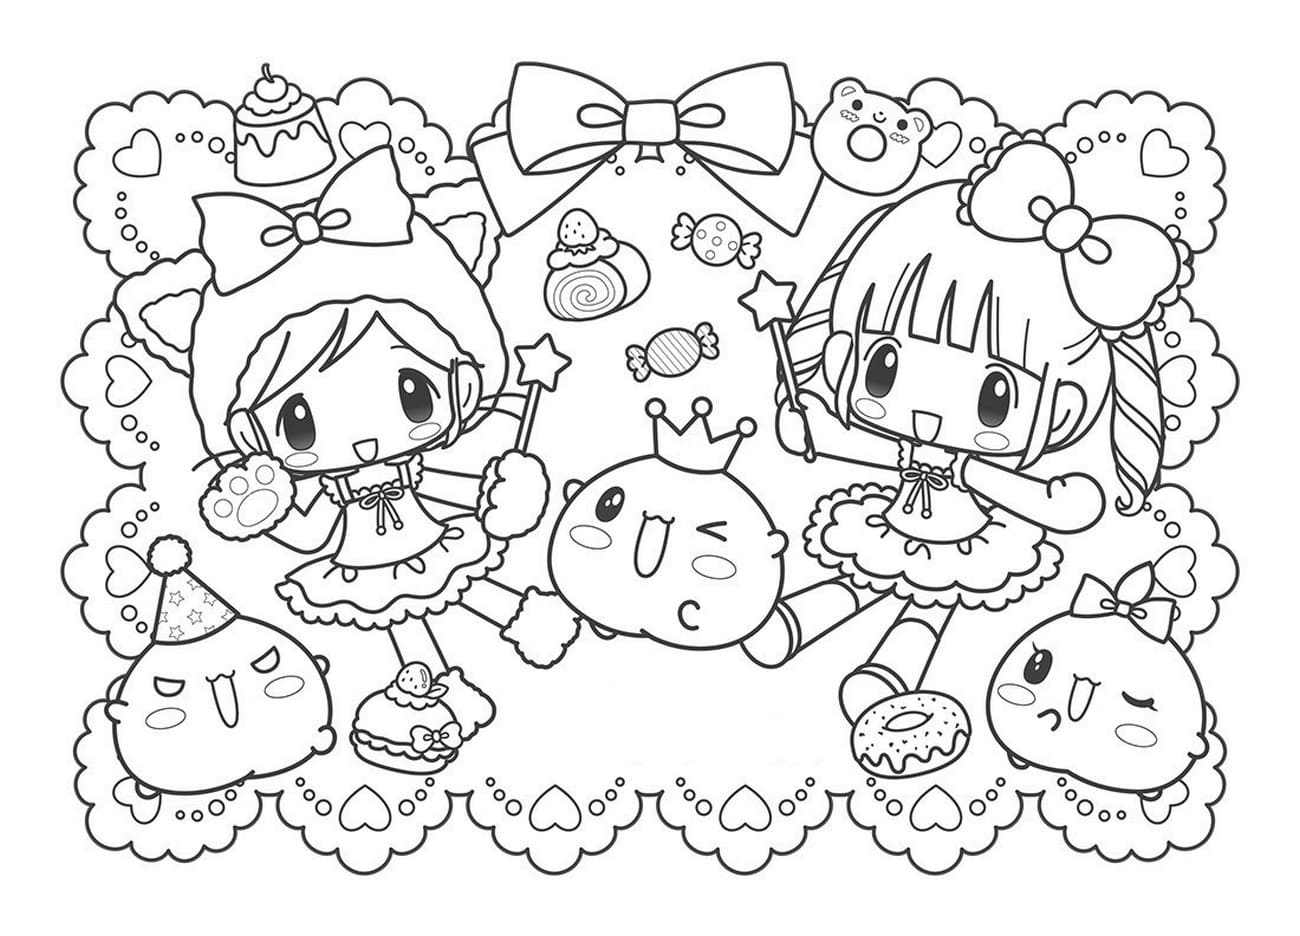 Kawaii Coloring pages. Print unusual characters, 100 images